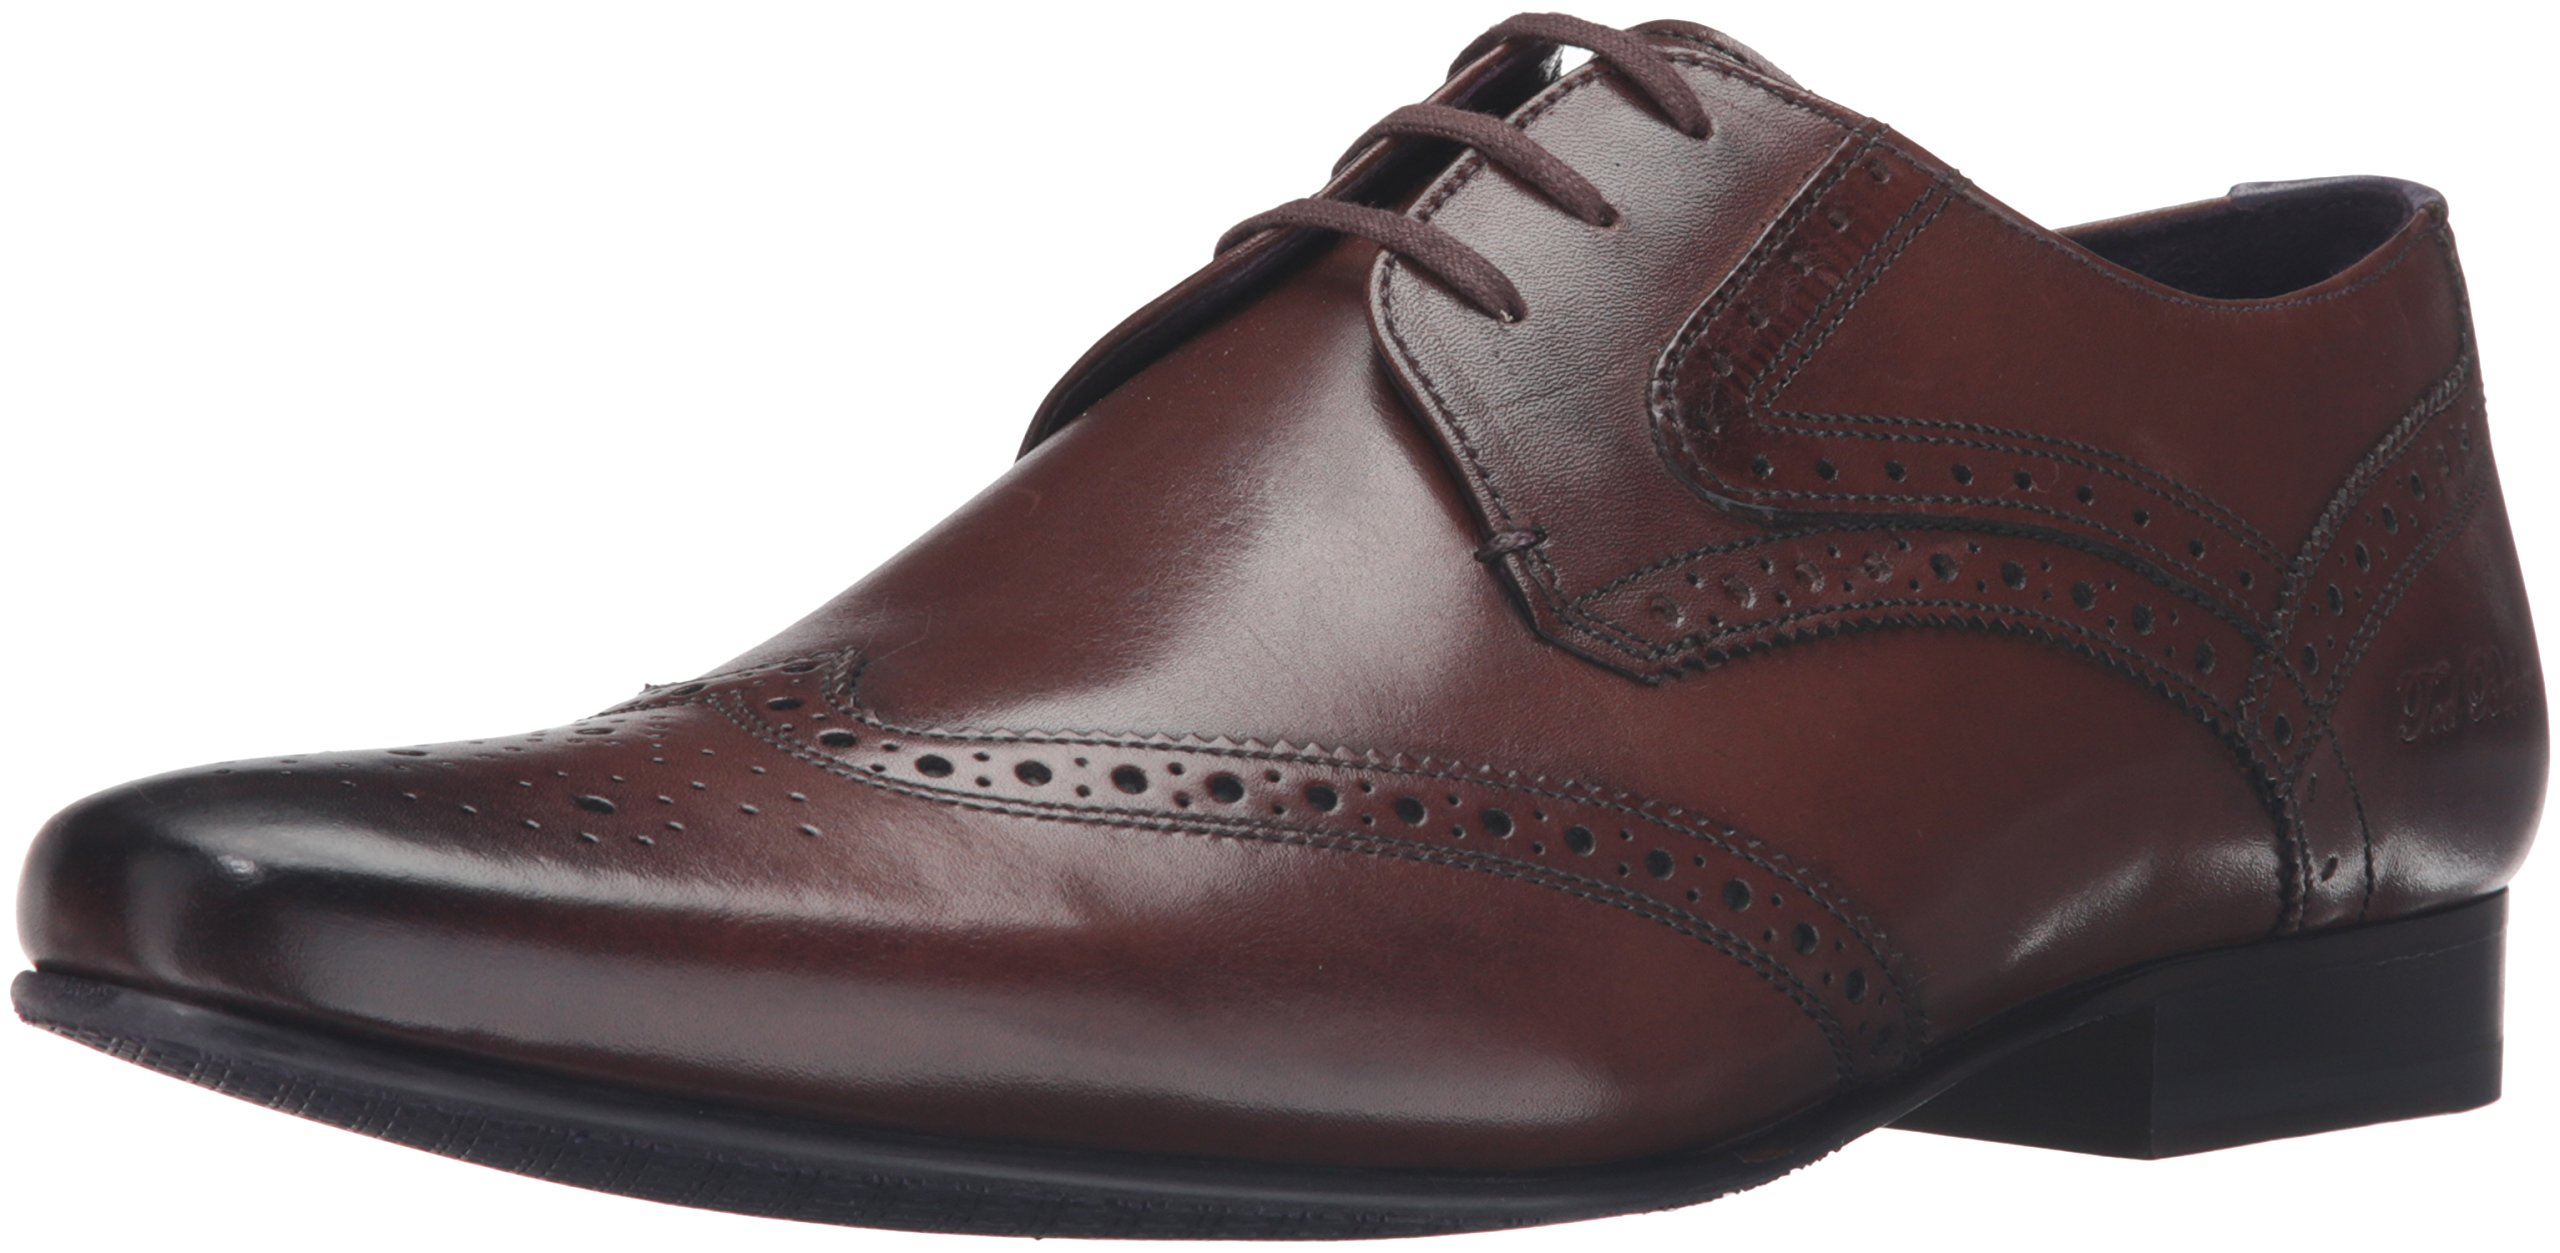 Ted Baker Men's Hann 2 Oxford, Brown, 9.5 D(M) US